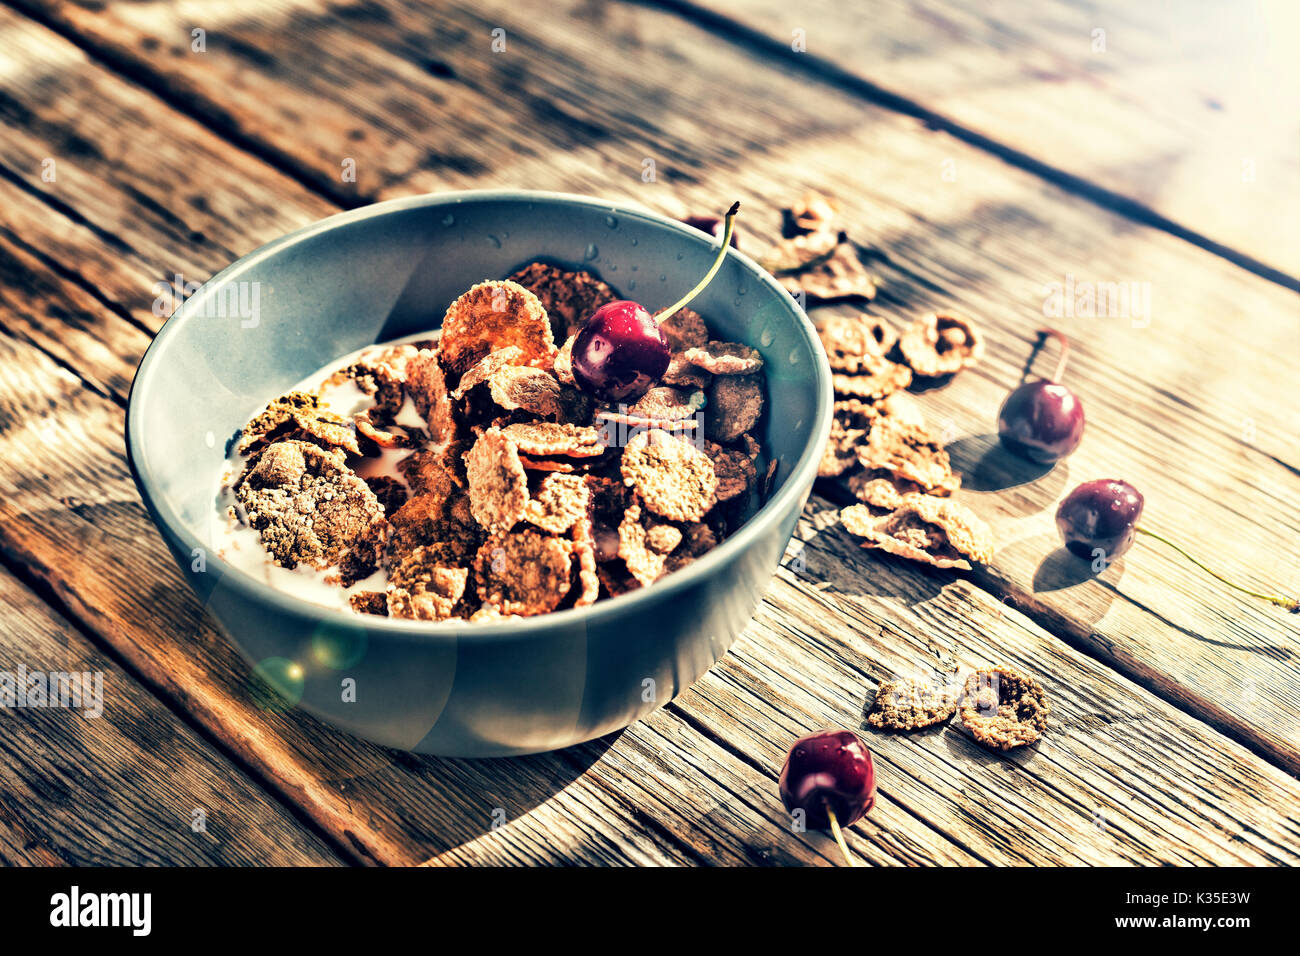 Healthy breakfast. Flakes with milk and fresh cherries, on a wooden table. - Stock Image